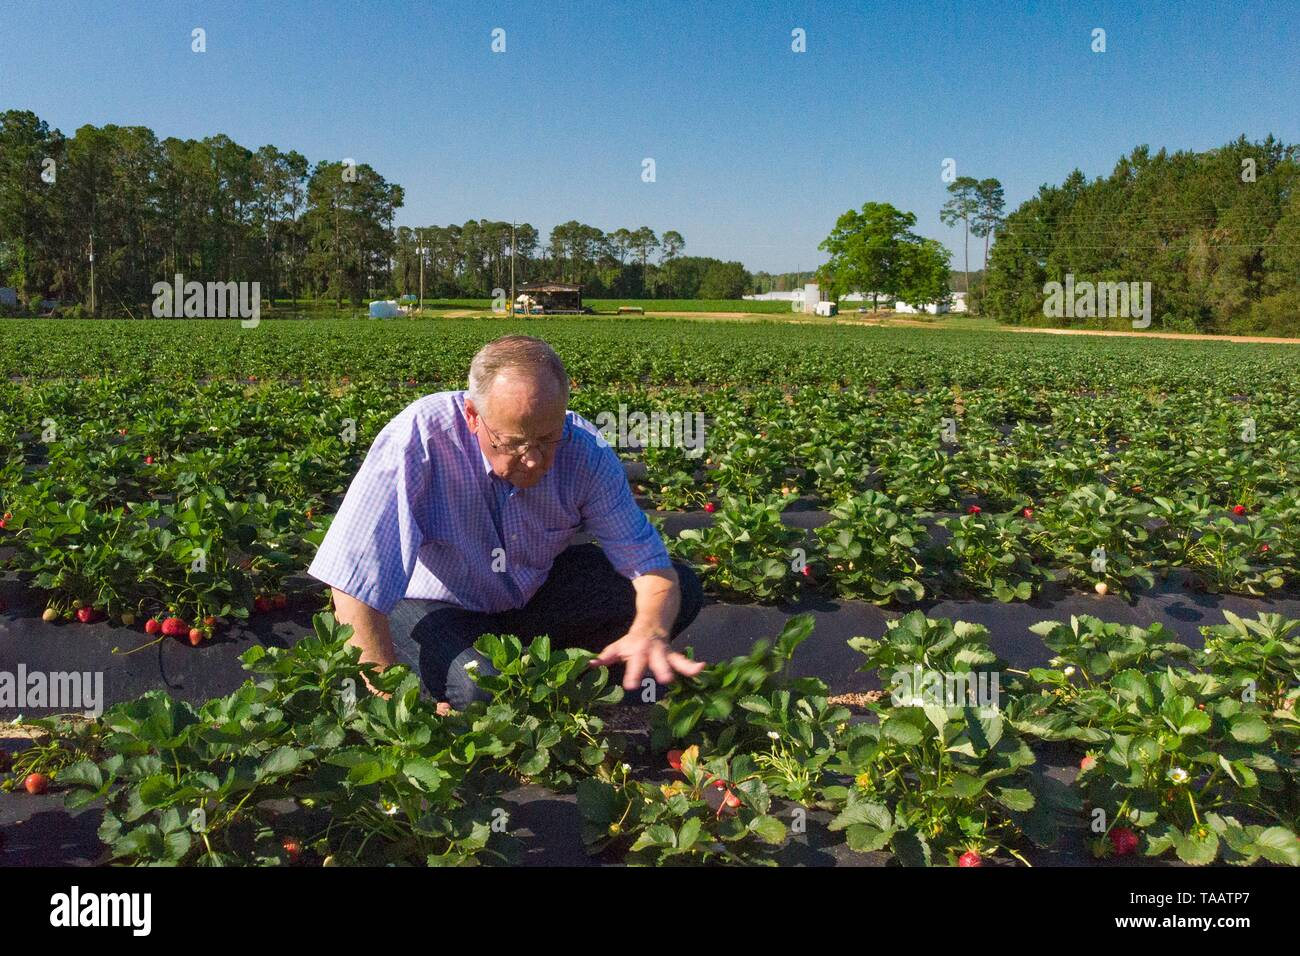 William L. Brim, owner of Lewis Taylor Farms, checks the condition of his strawberries, in preparation for harvest by migrant labor May 7, 2019 in Fort Valley, Georgia. A, on May 7, 2019. Farms rely on seasonal labor using the H-2A visa program for temporary agricultural workers often called the guest worker program. - Stock Image